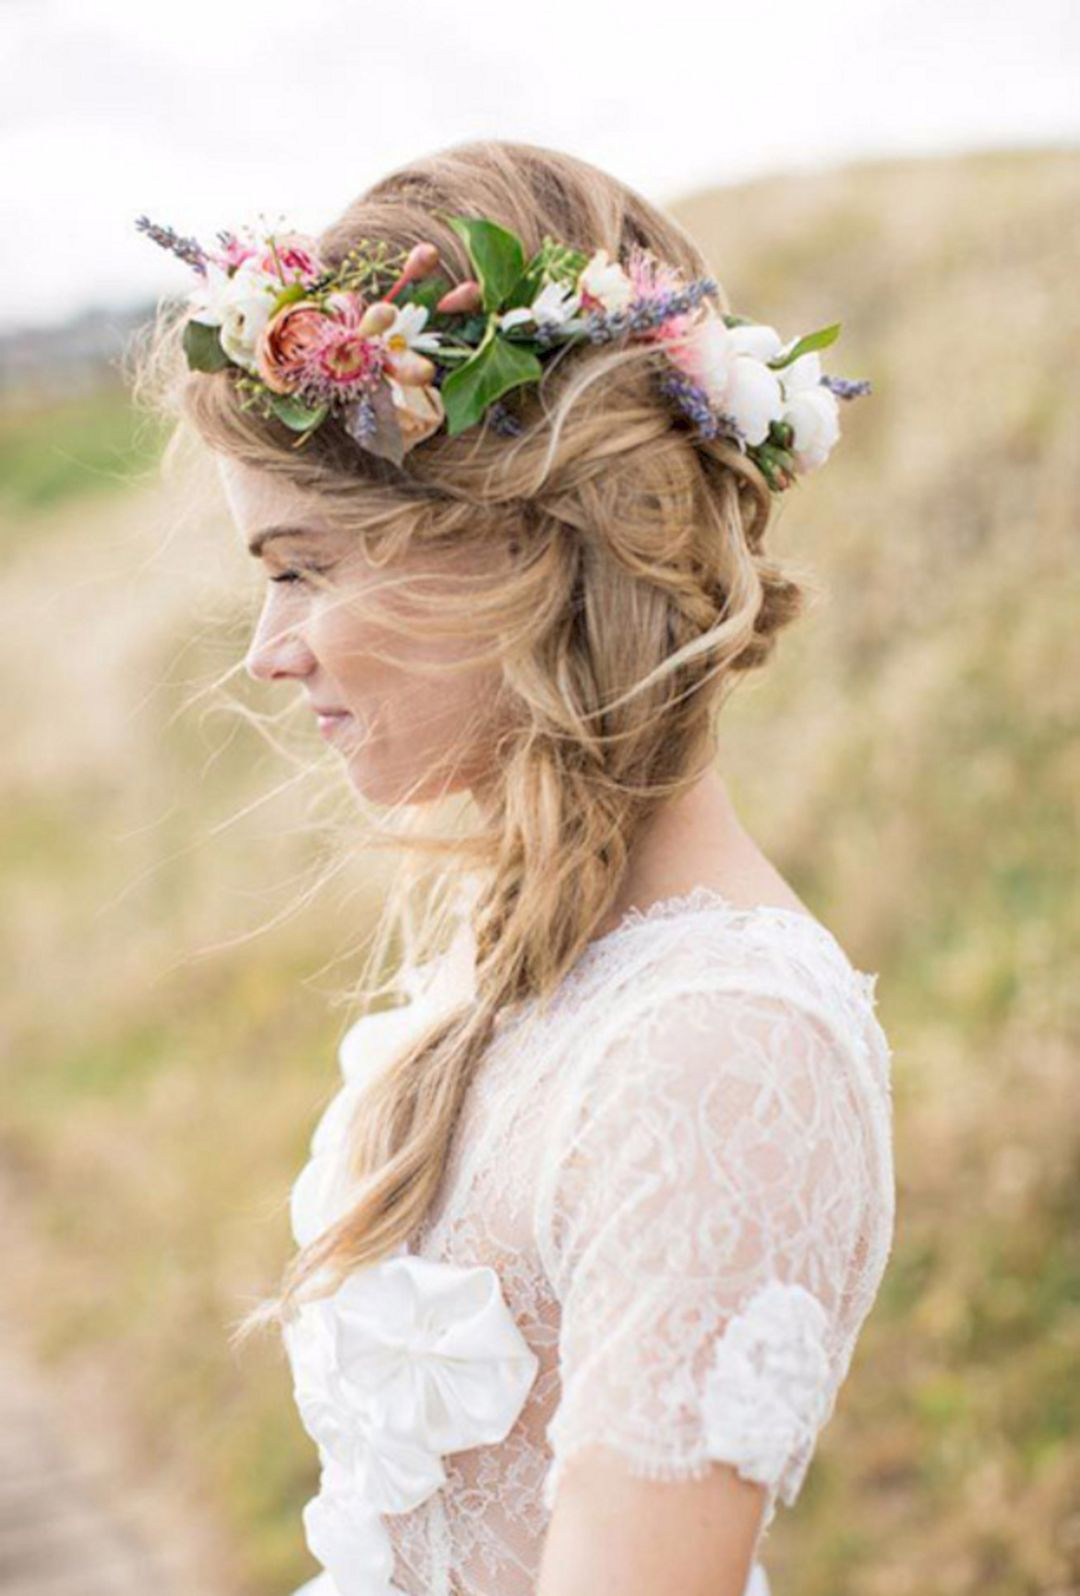 Top 50 wedding short hairstyles with flower crown ideas pinterest best top 50 wedding short hairstyles with flower crown ideas httpsoosiletop 50 wedding short hairstyles with flower crown ideas 13131 izmirmasajfo